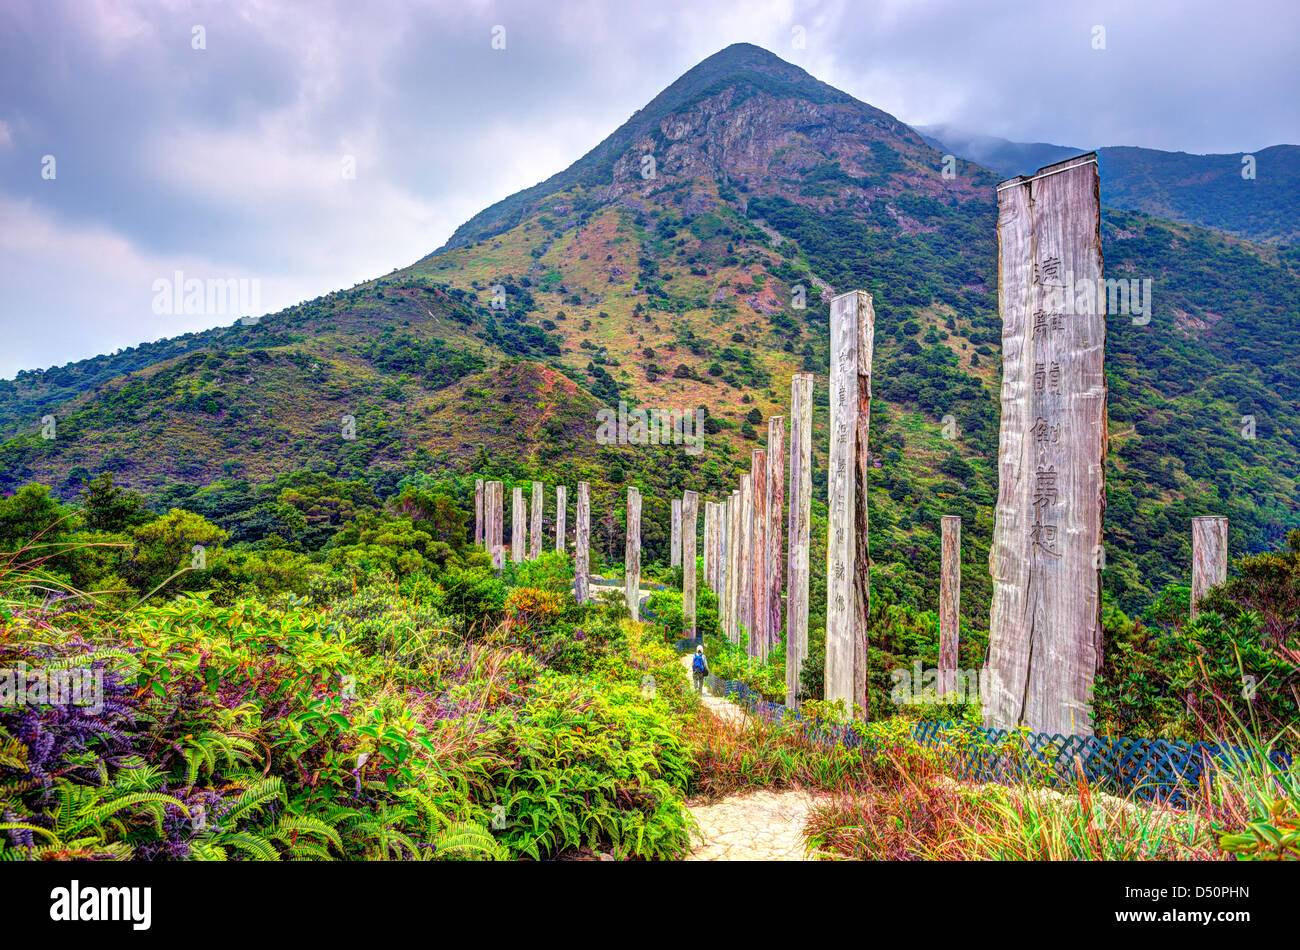 Steles containing centuries old sutra along Wisdom path at the hills of Ngong Ping on Lantau Island, Hong Kong, - Stock Image